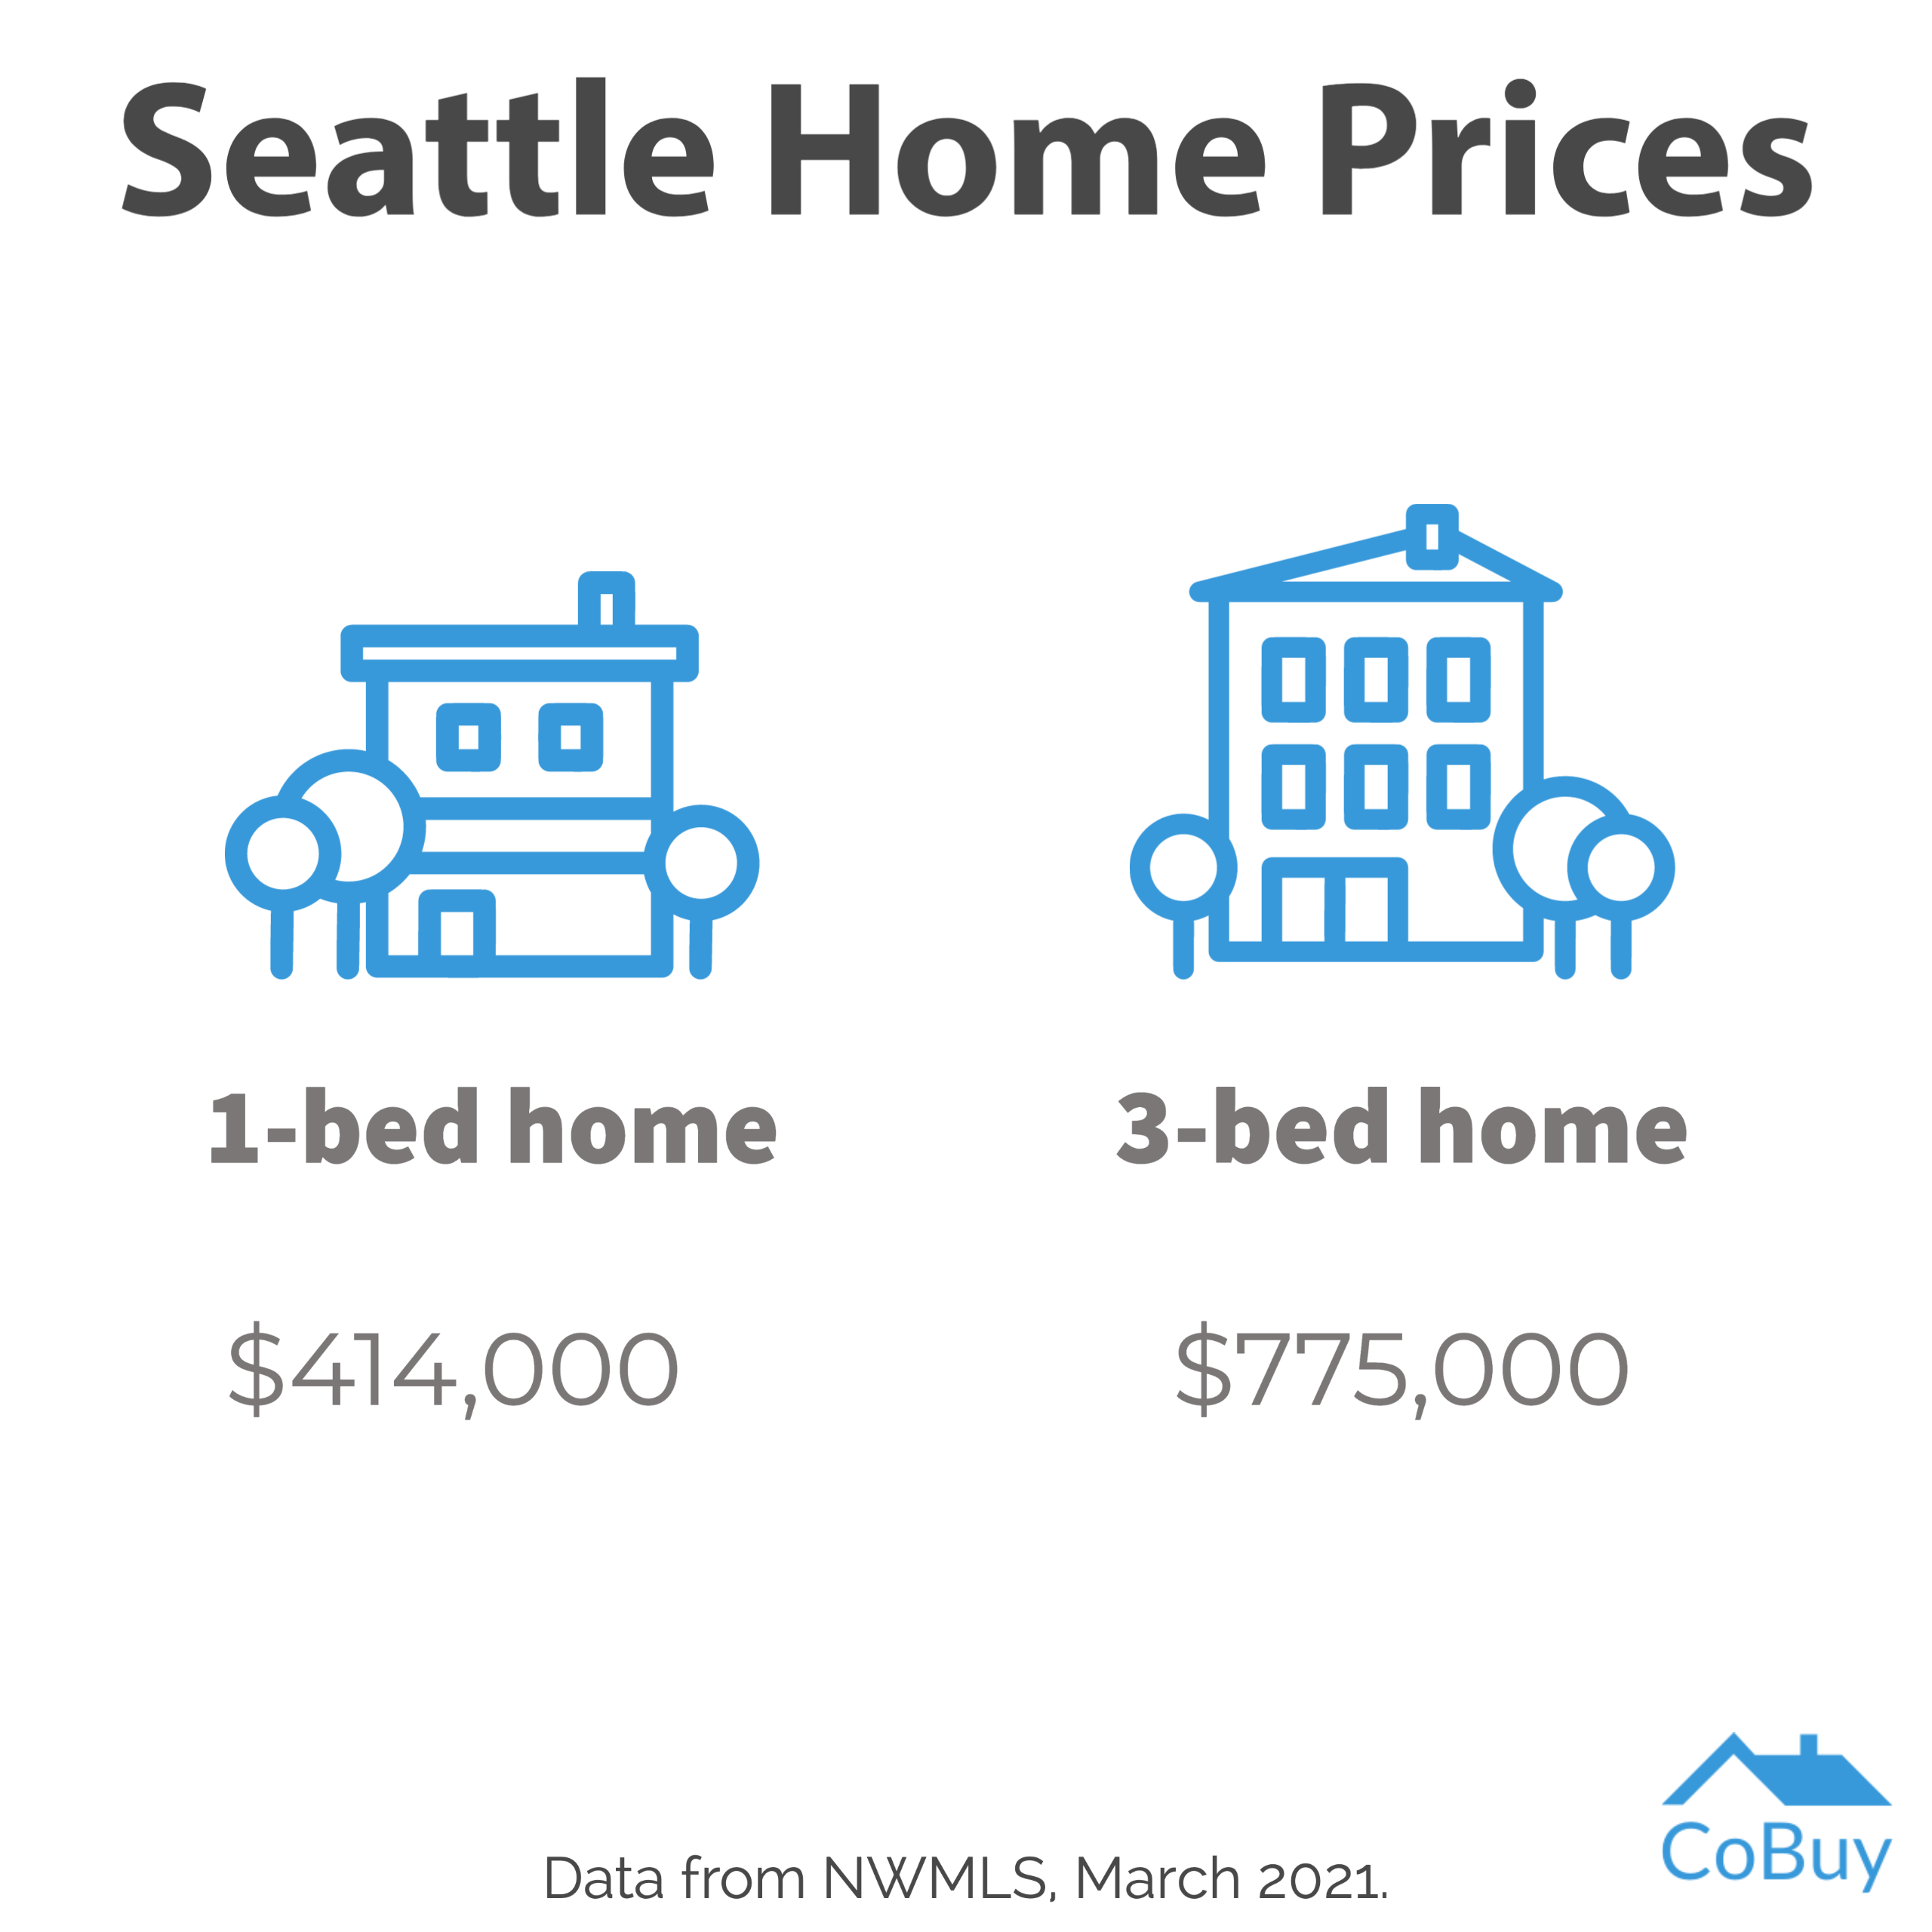 The median sale price for a 1-bed home in Seattle is $414,000, while a 3-bed home is $775,000.